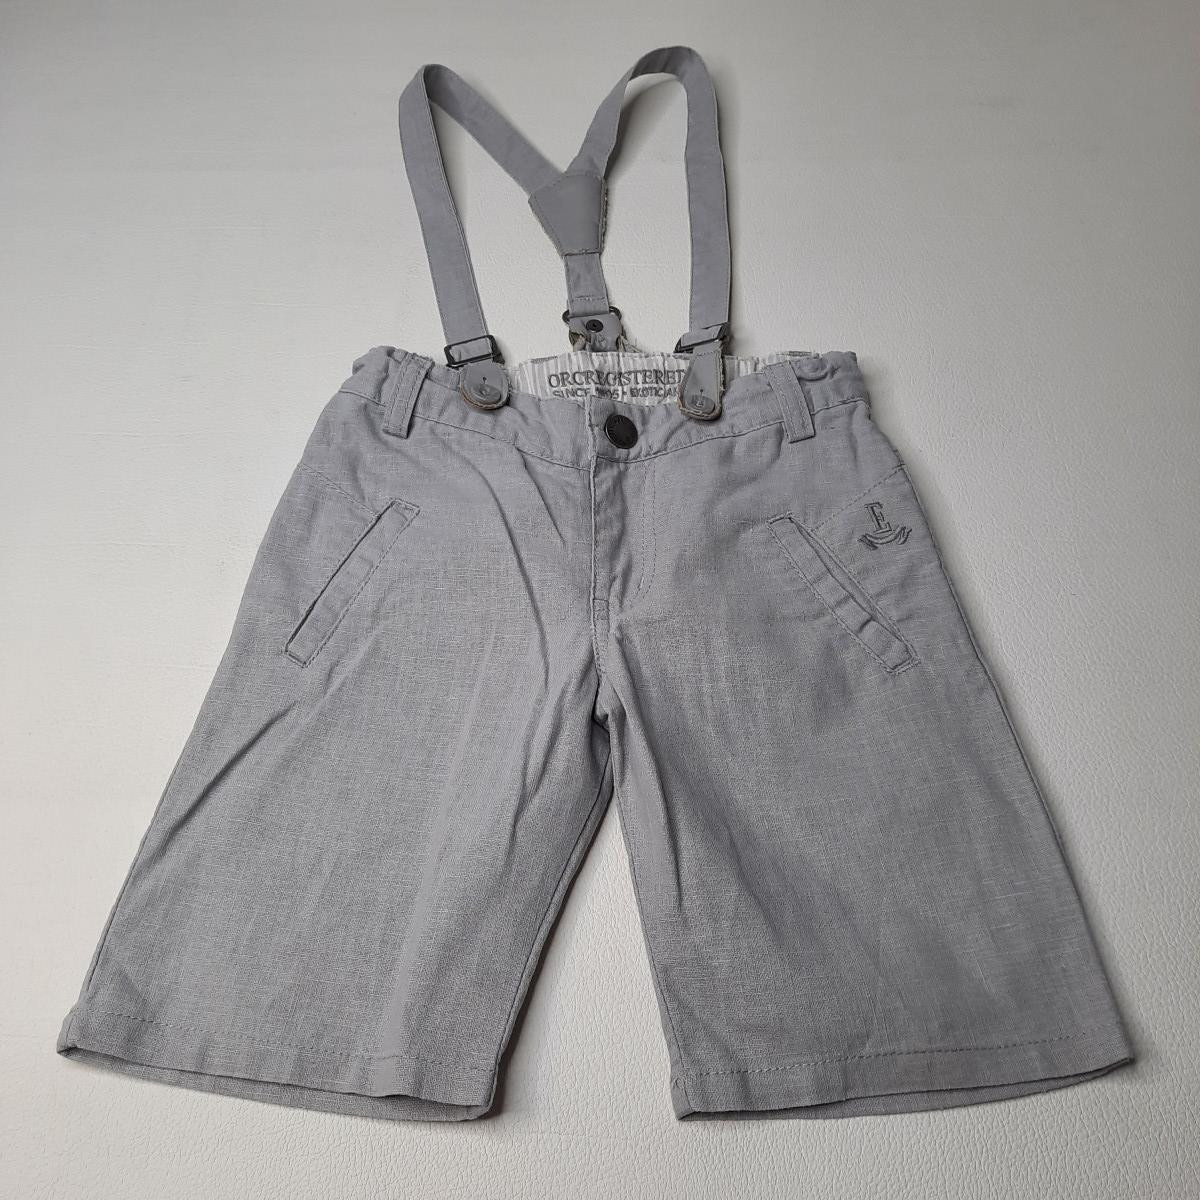 Shorts, Bermudas - photo 32